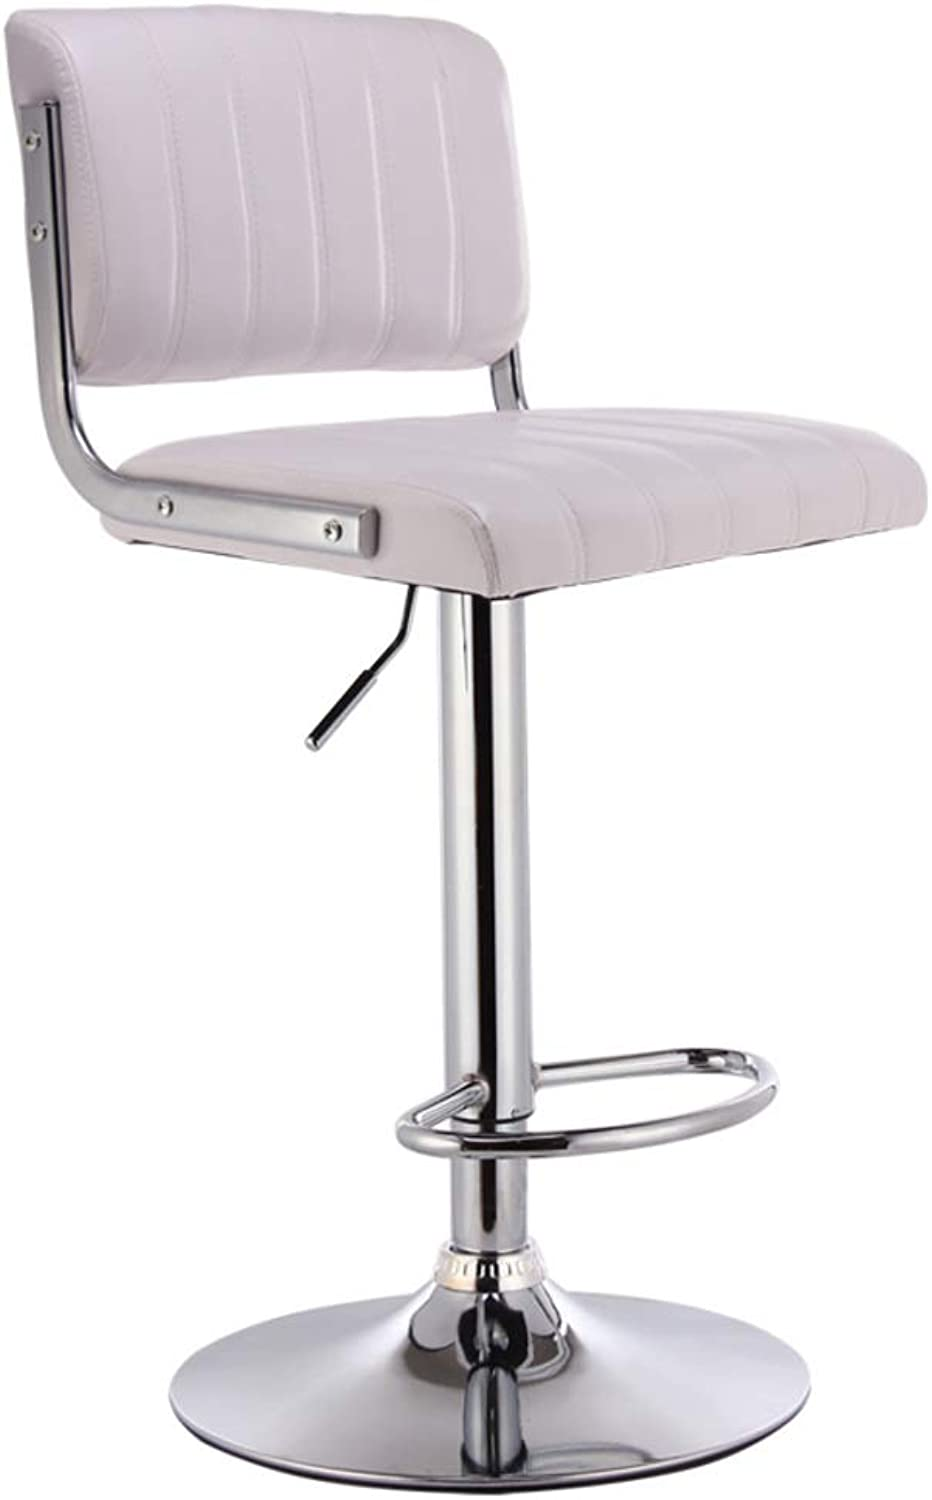 c1d121570482 DULPLAY Swivel Stool bar Bar stools,Adjustable Height PU with Adjustable  Foot Rest Modern Barstool Chairs,Counter Comfy -White 40x83cm(16x33inch)  Leather ...